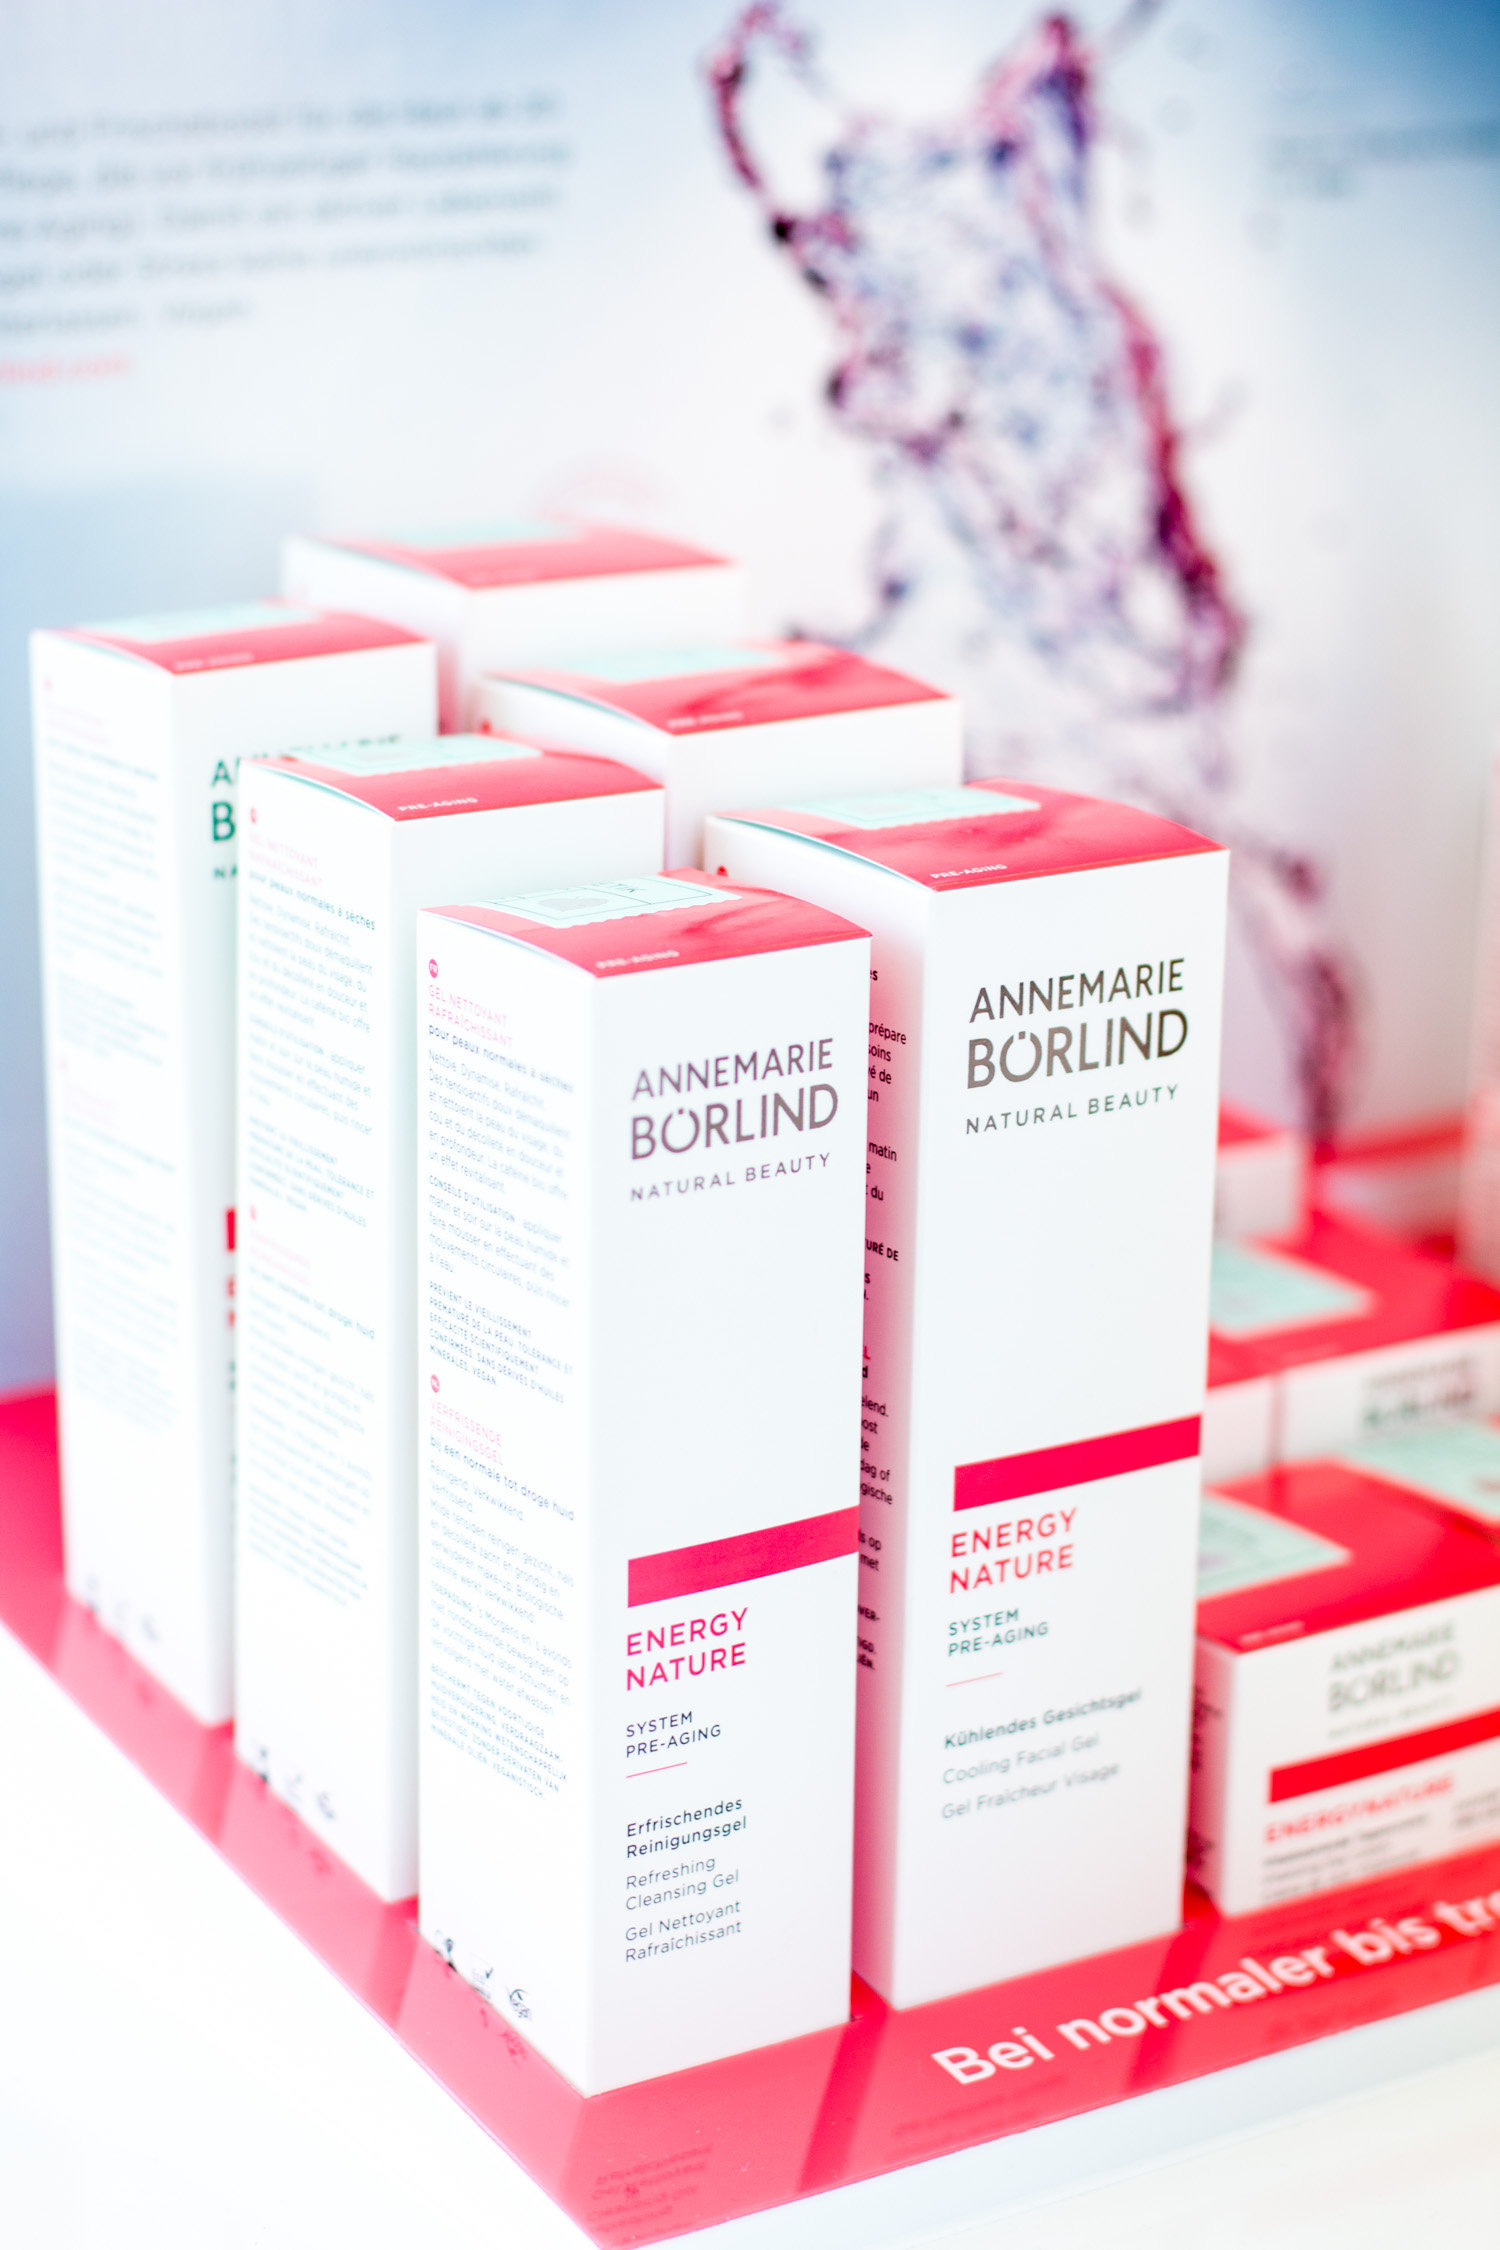 Out & About: Annemarie Börlind Energynature | The Daily Dose